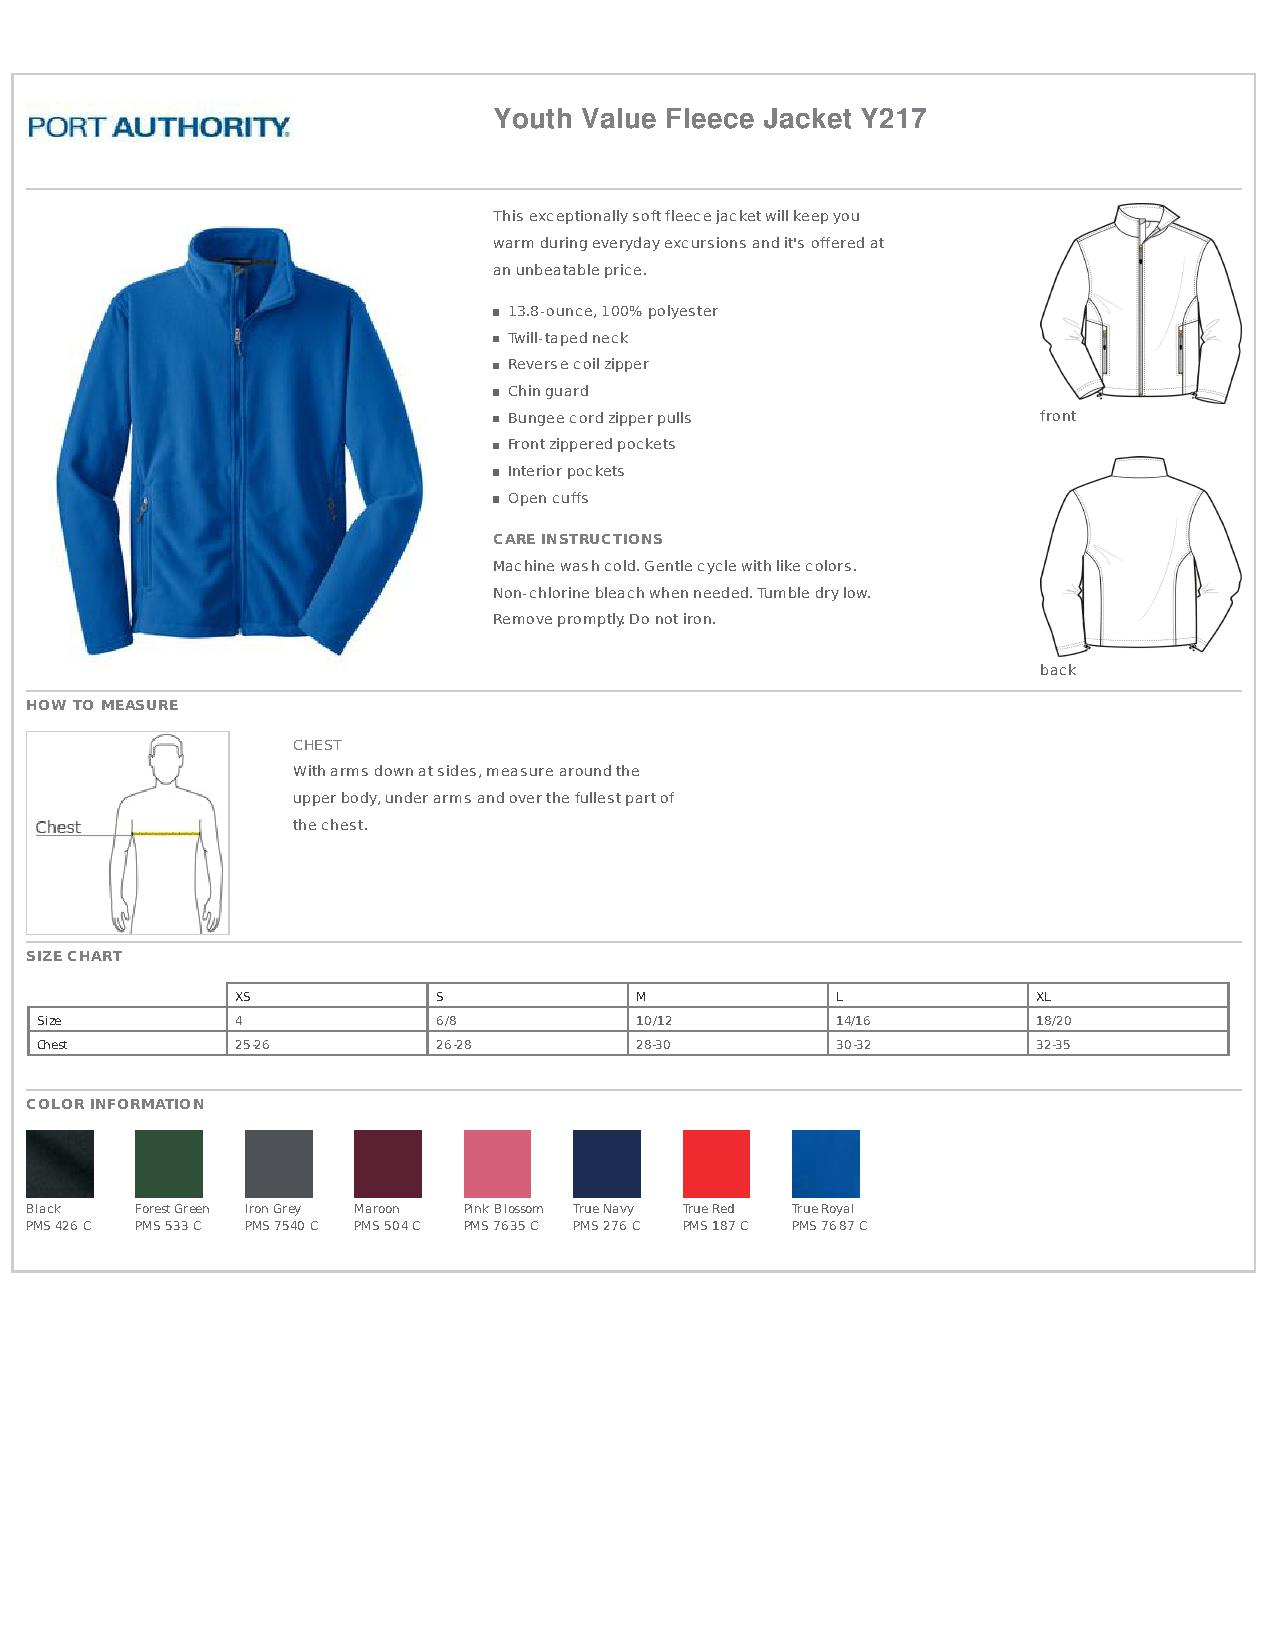 Port Authority® Y217 Youth Value Fleece Jacket - Outerwear